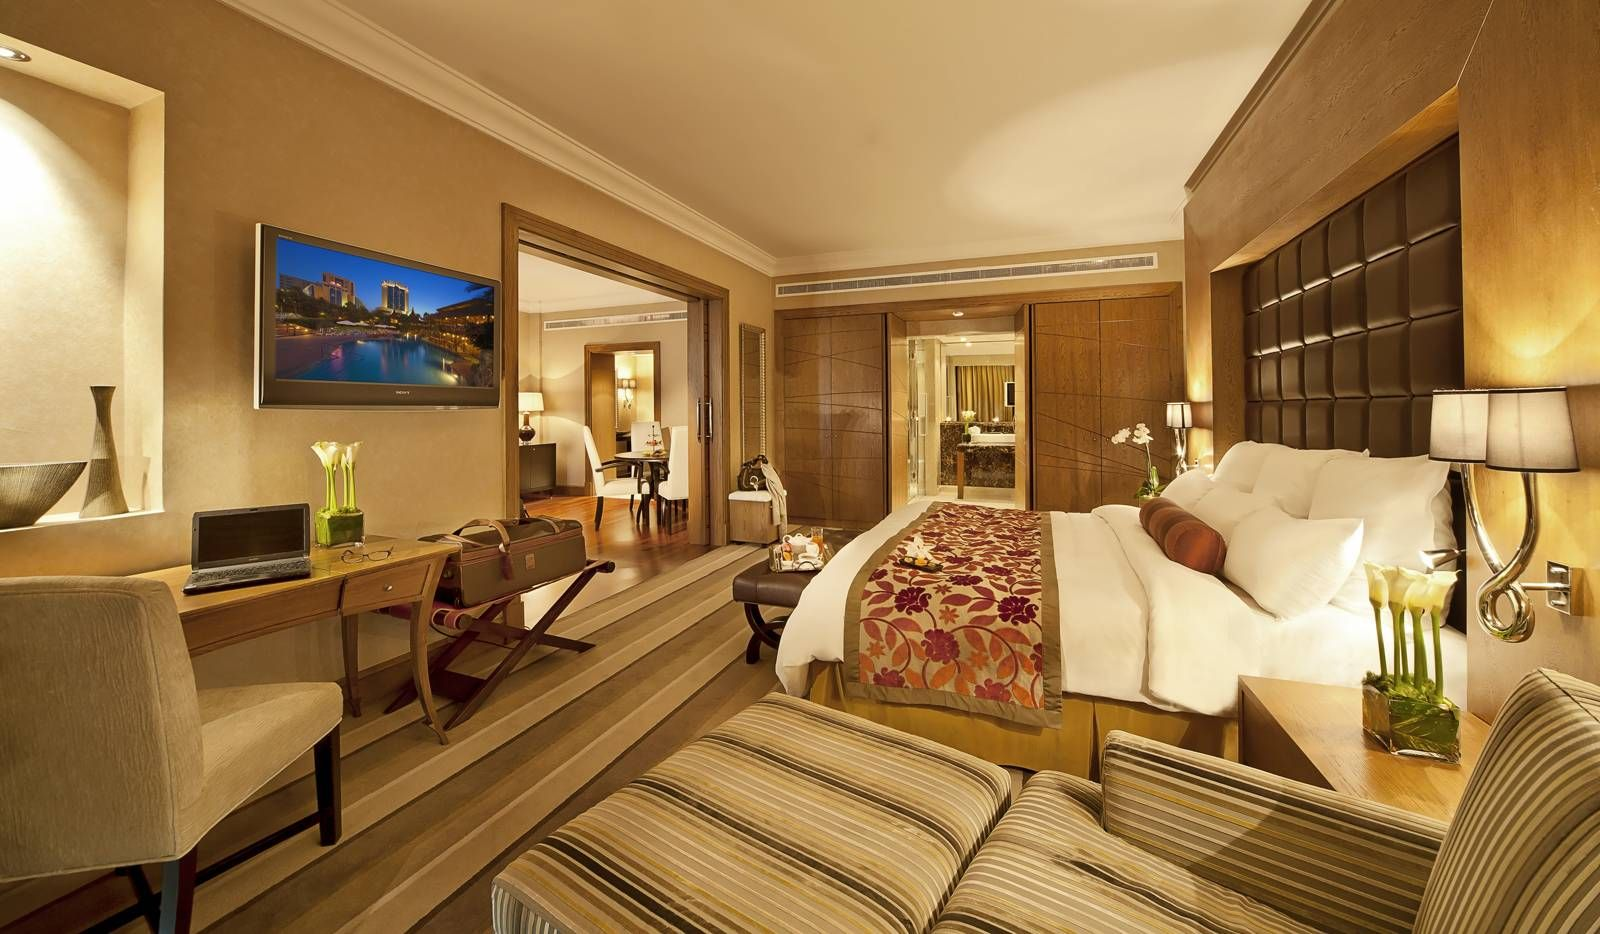 Luxury Master Bedroom Suites | Luxury Accomodation In Bahrain   Luxury  Suites | The Gulf Hotel